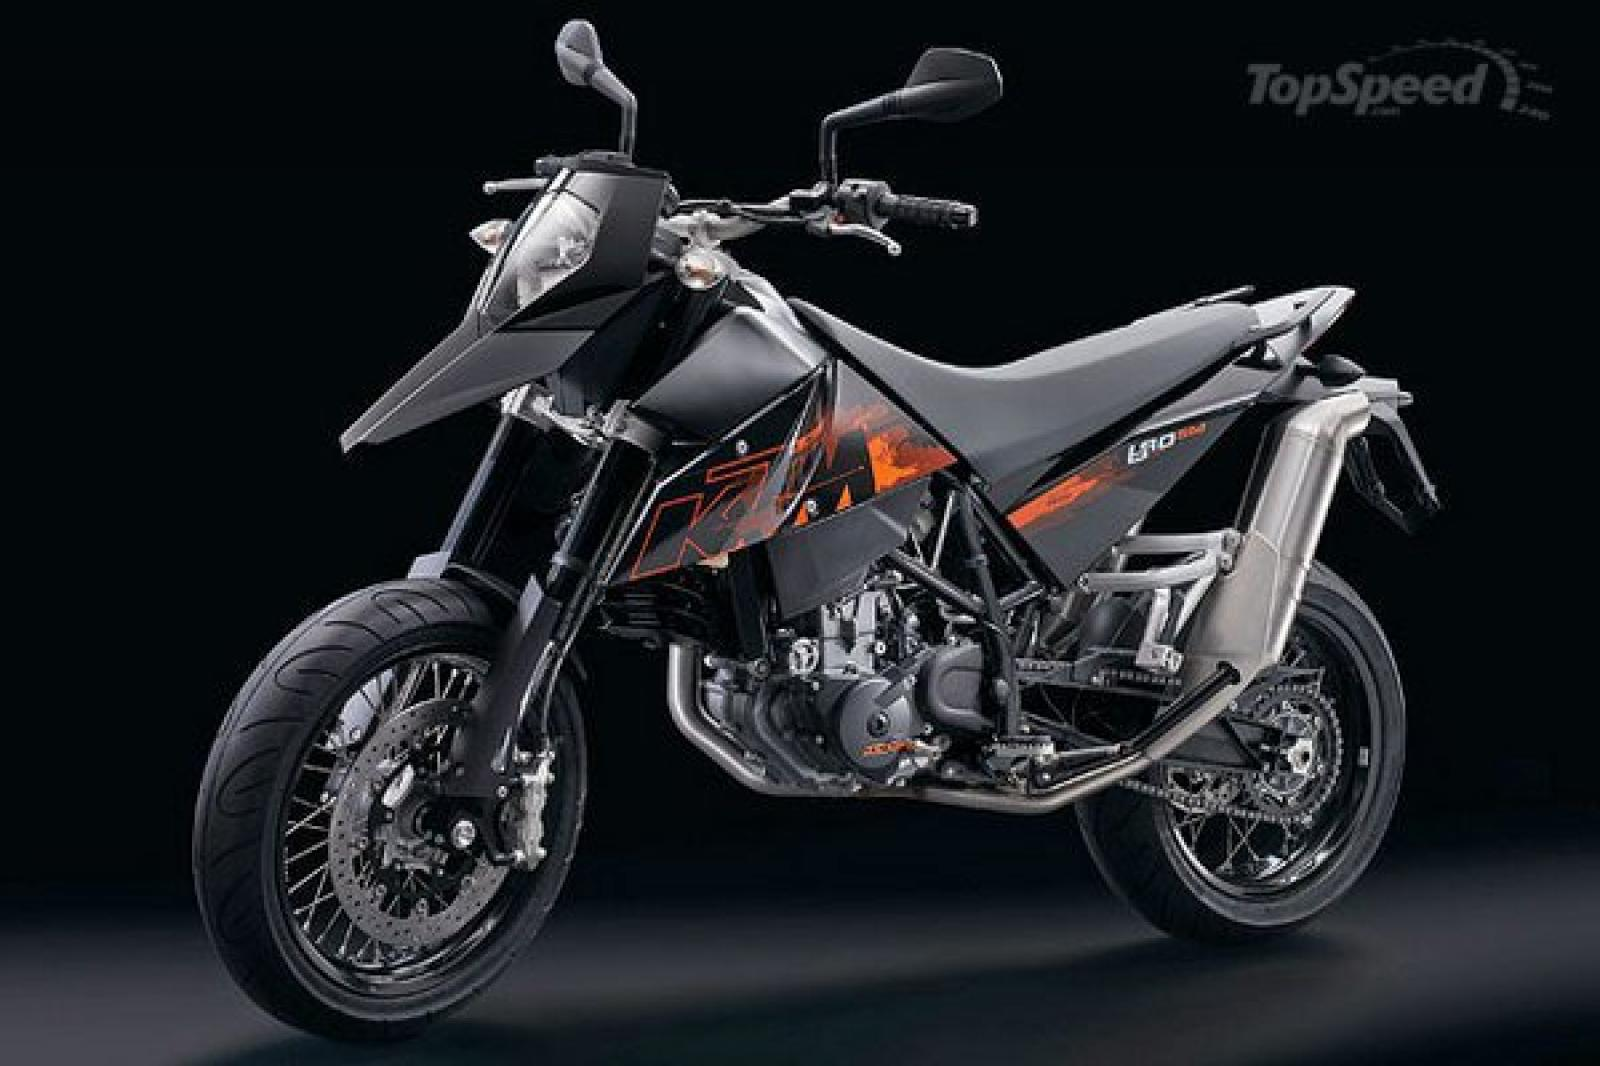 KTM 690 Supermoto Limited Edition 2010 images #155312